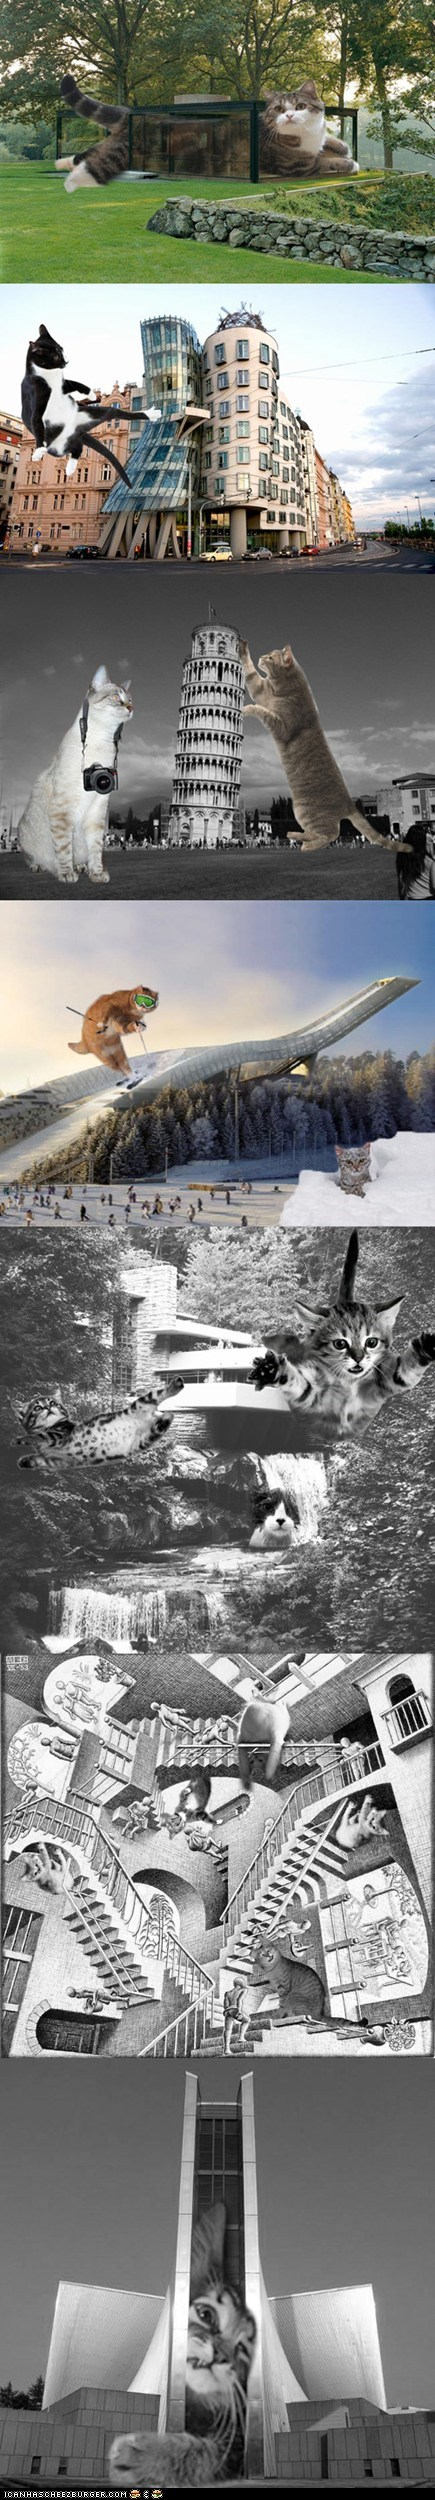 architecture,buildings,Cats,furrocious forms,photoshopped,silly,wtf